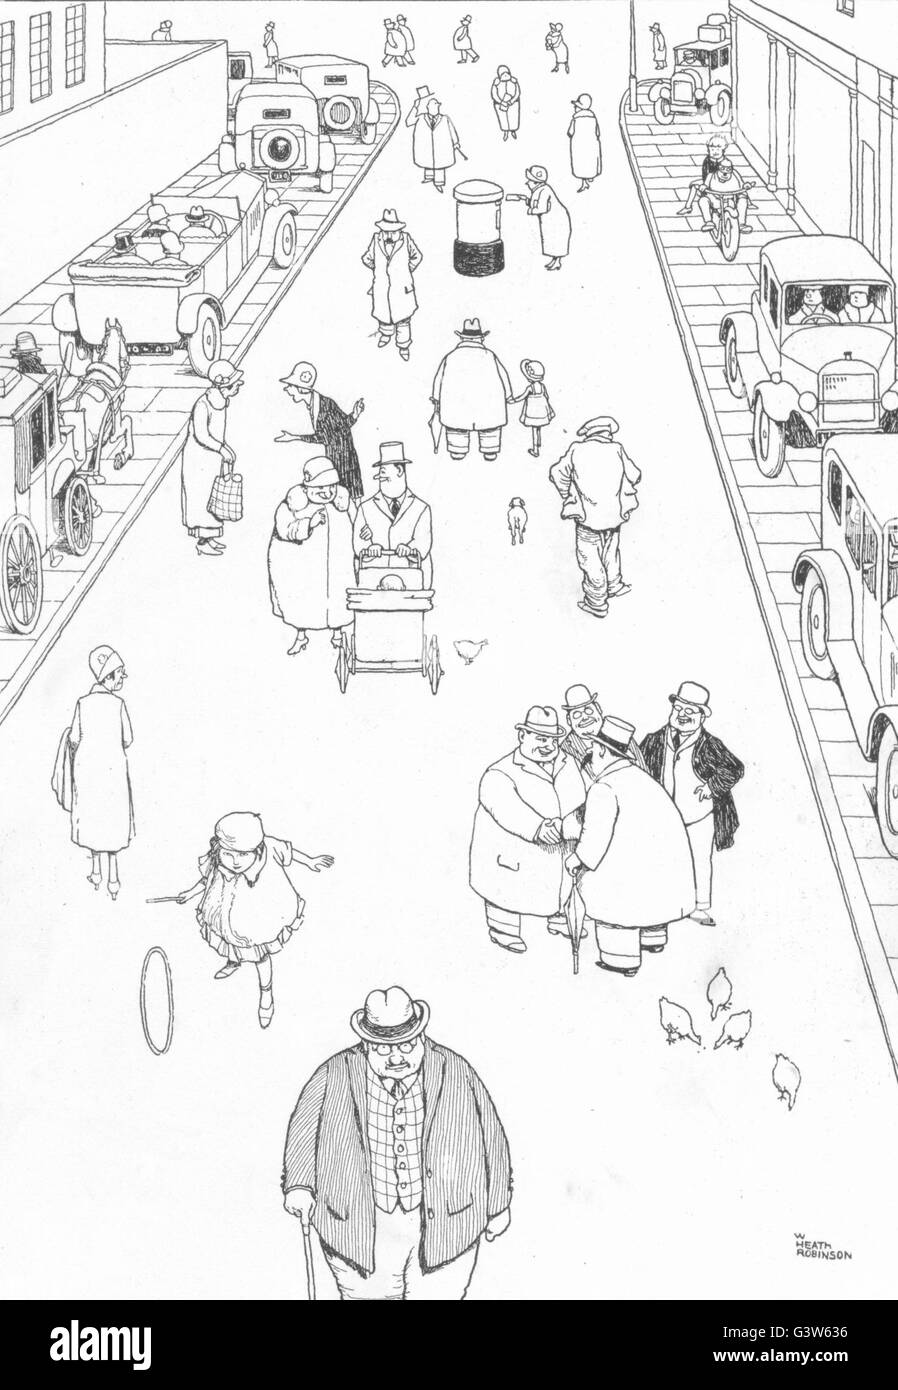 HEATH ROBINSON: New road regulations for safety of pedestrians, old print 1920 - Stock Image